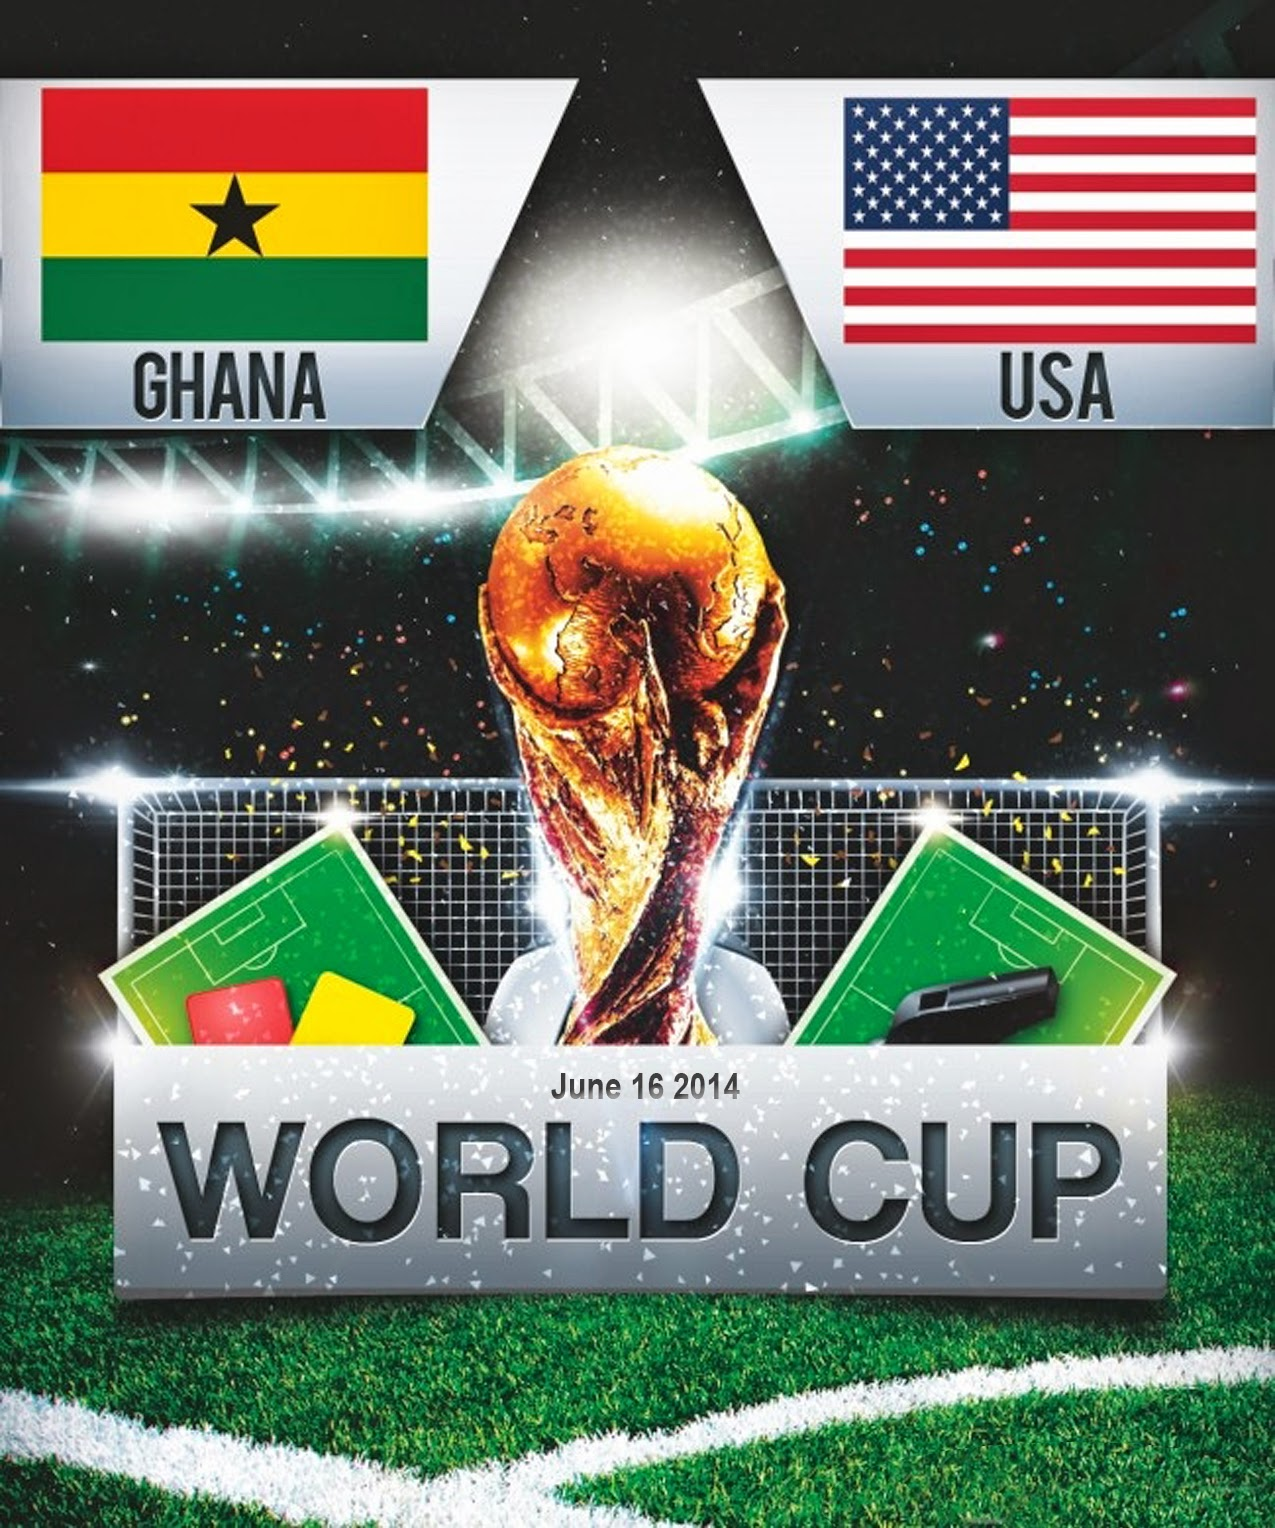 FIFA World Cup 2014 - USA Vs Ghana